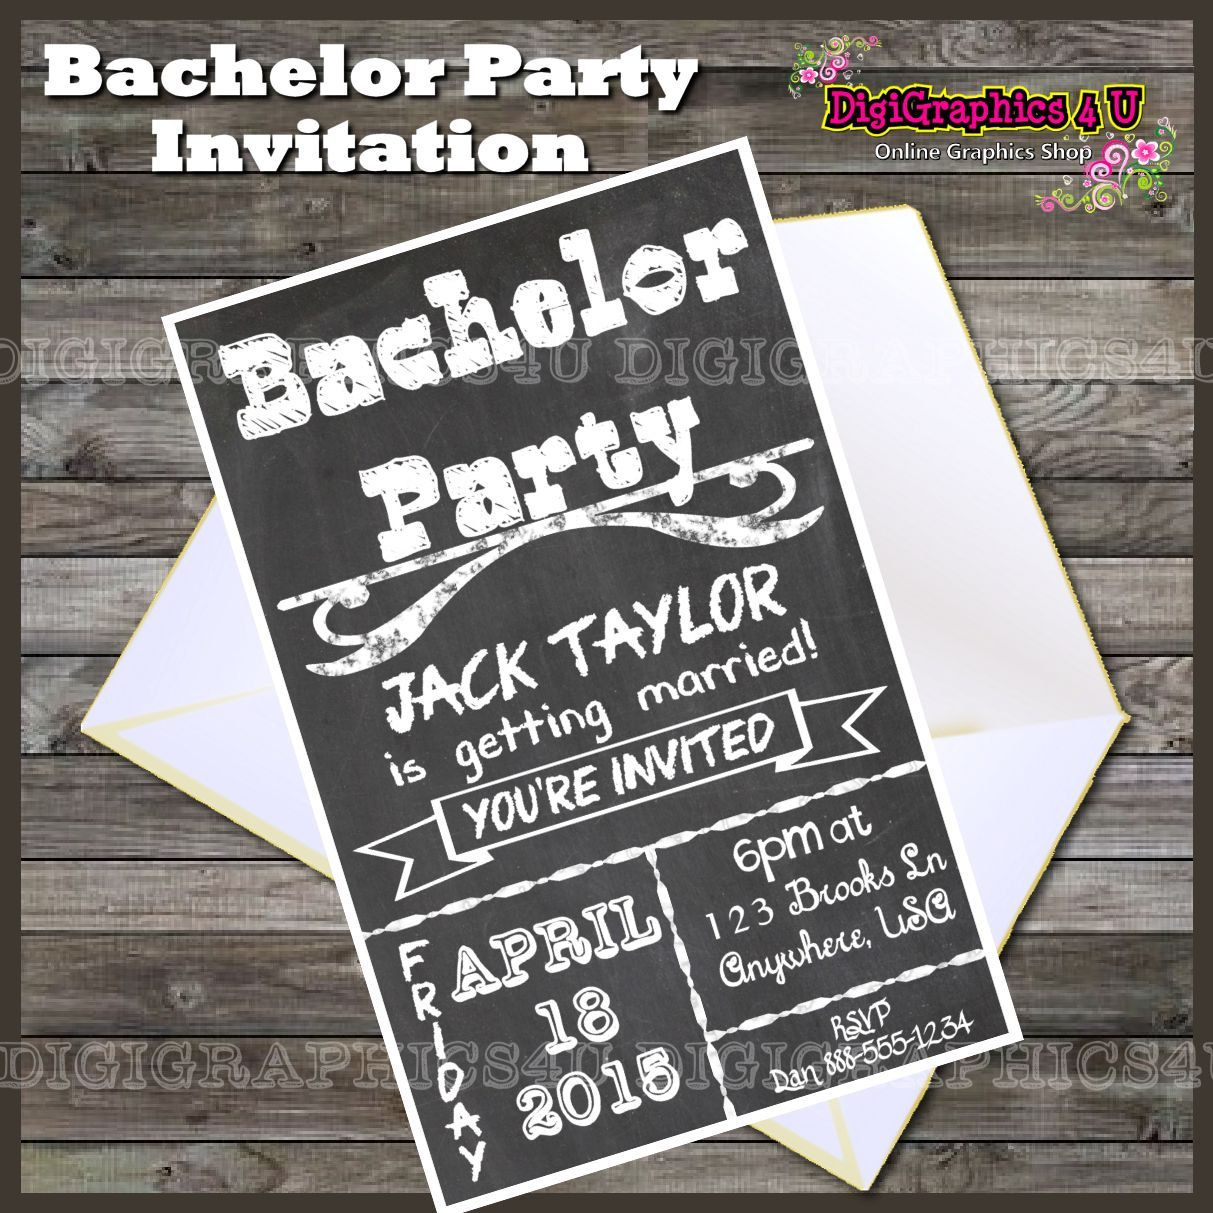 Stunning Bachelor Party Invitation Templates Photos - Professional ...